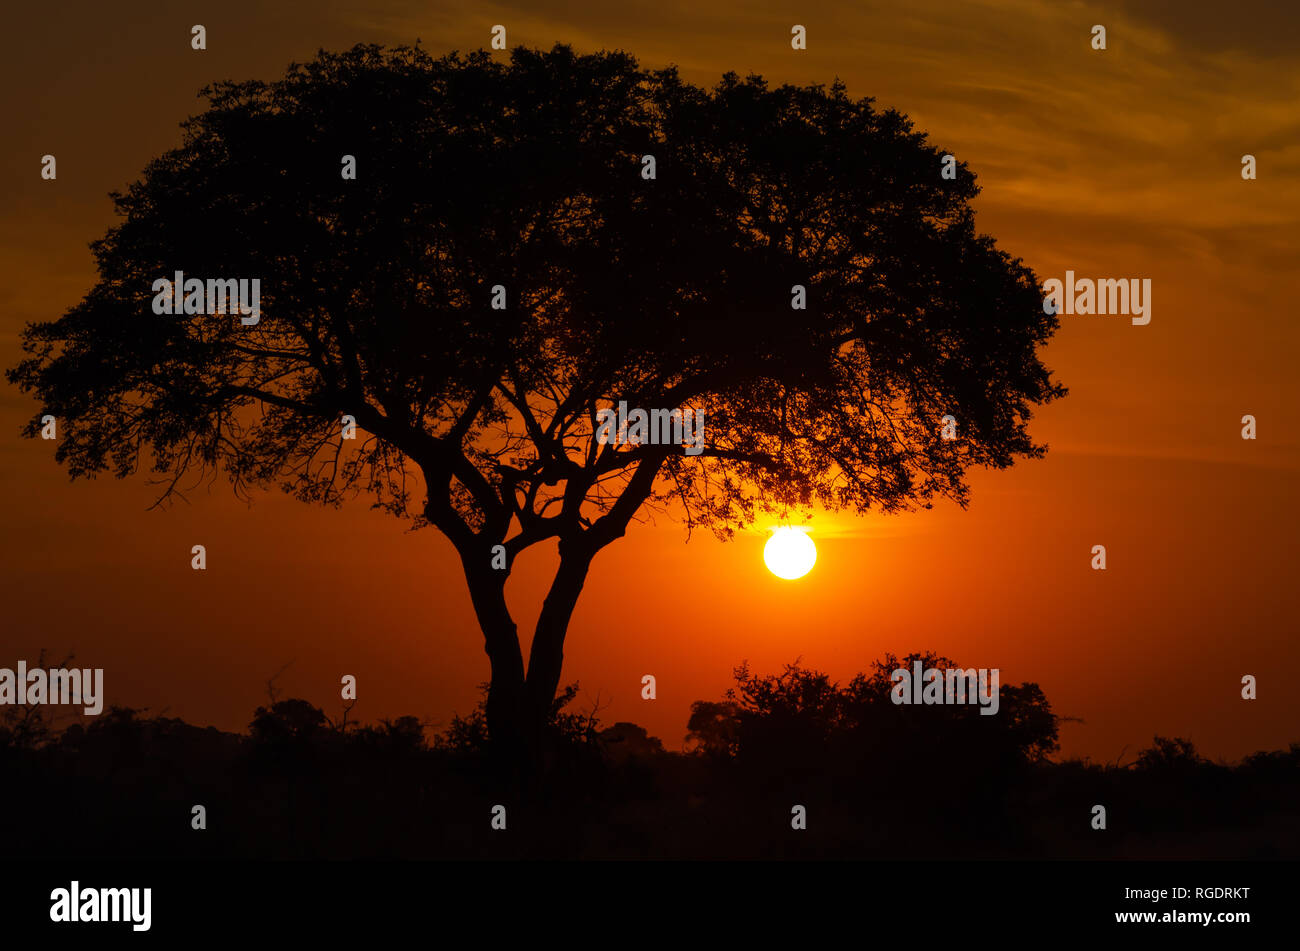 The sun sets majestically behind a tree in the Kruger National Park, South Africa. - Stock Image